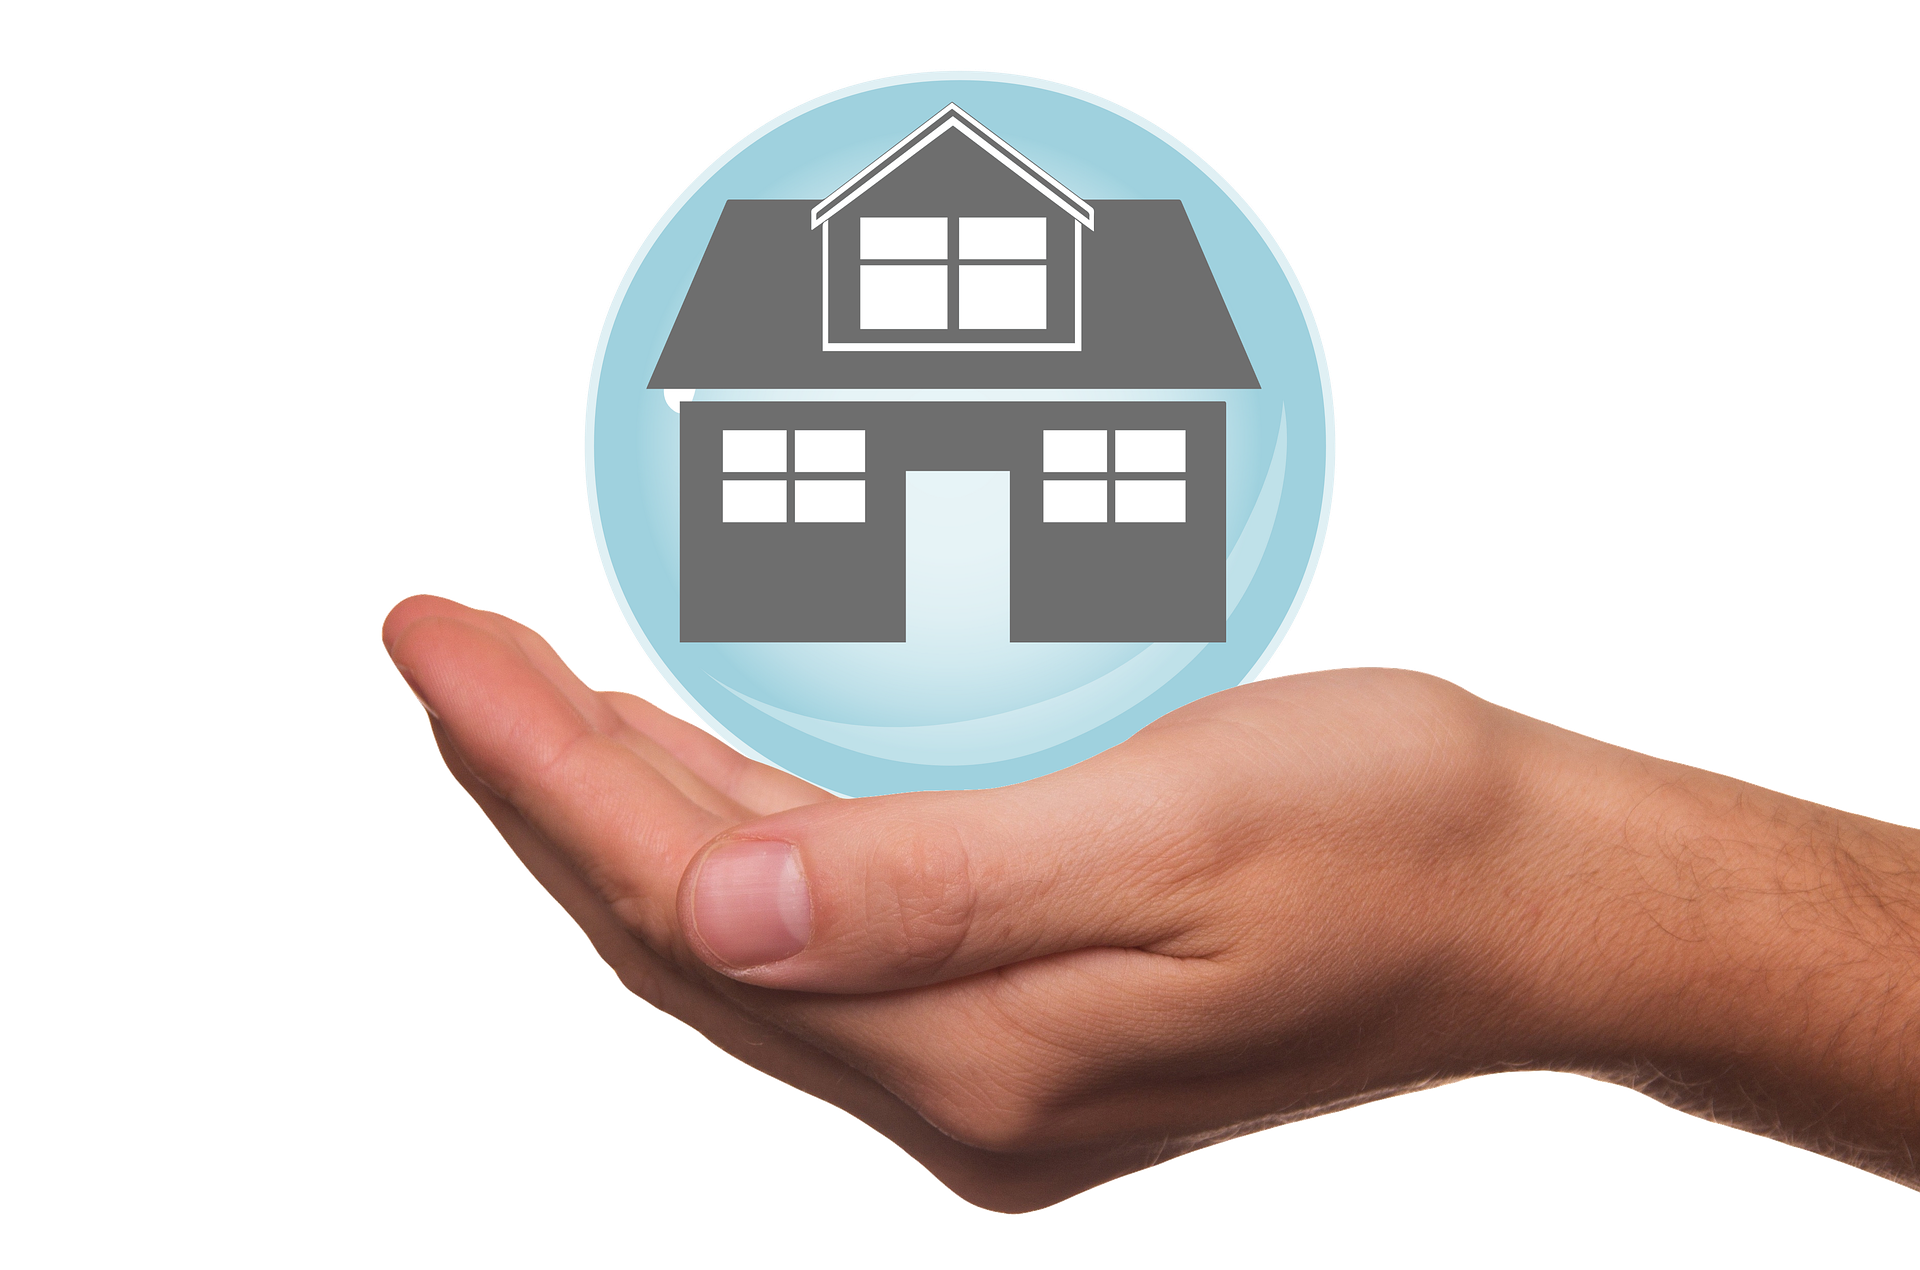 Home Insurance 101: An Overview on High-Value Home Insurance